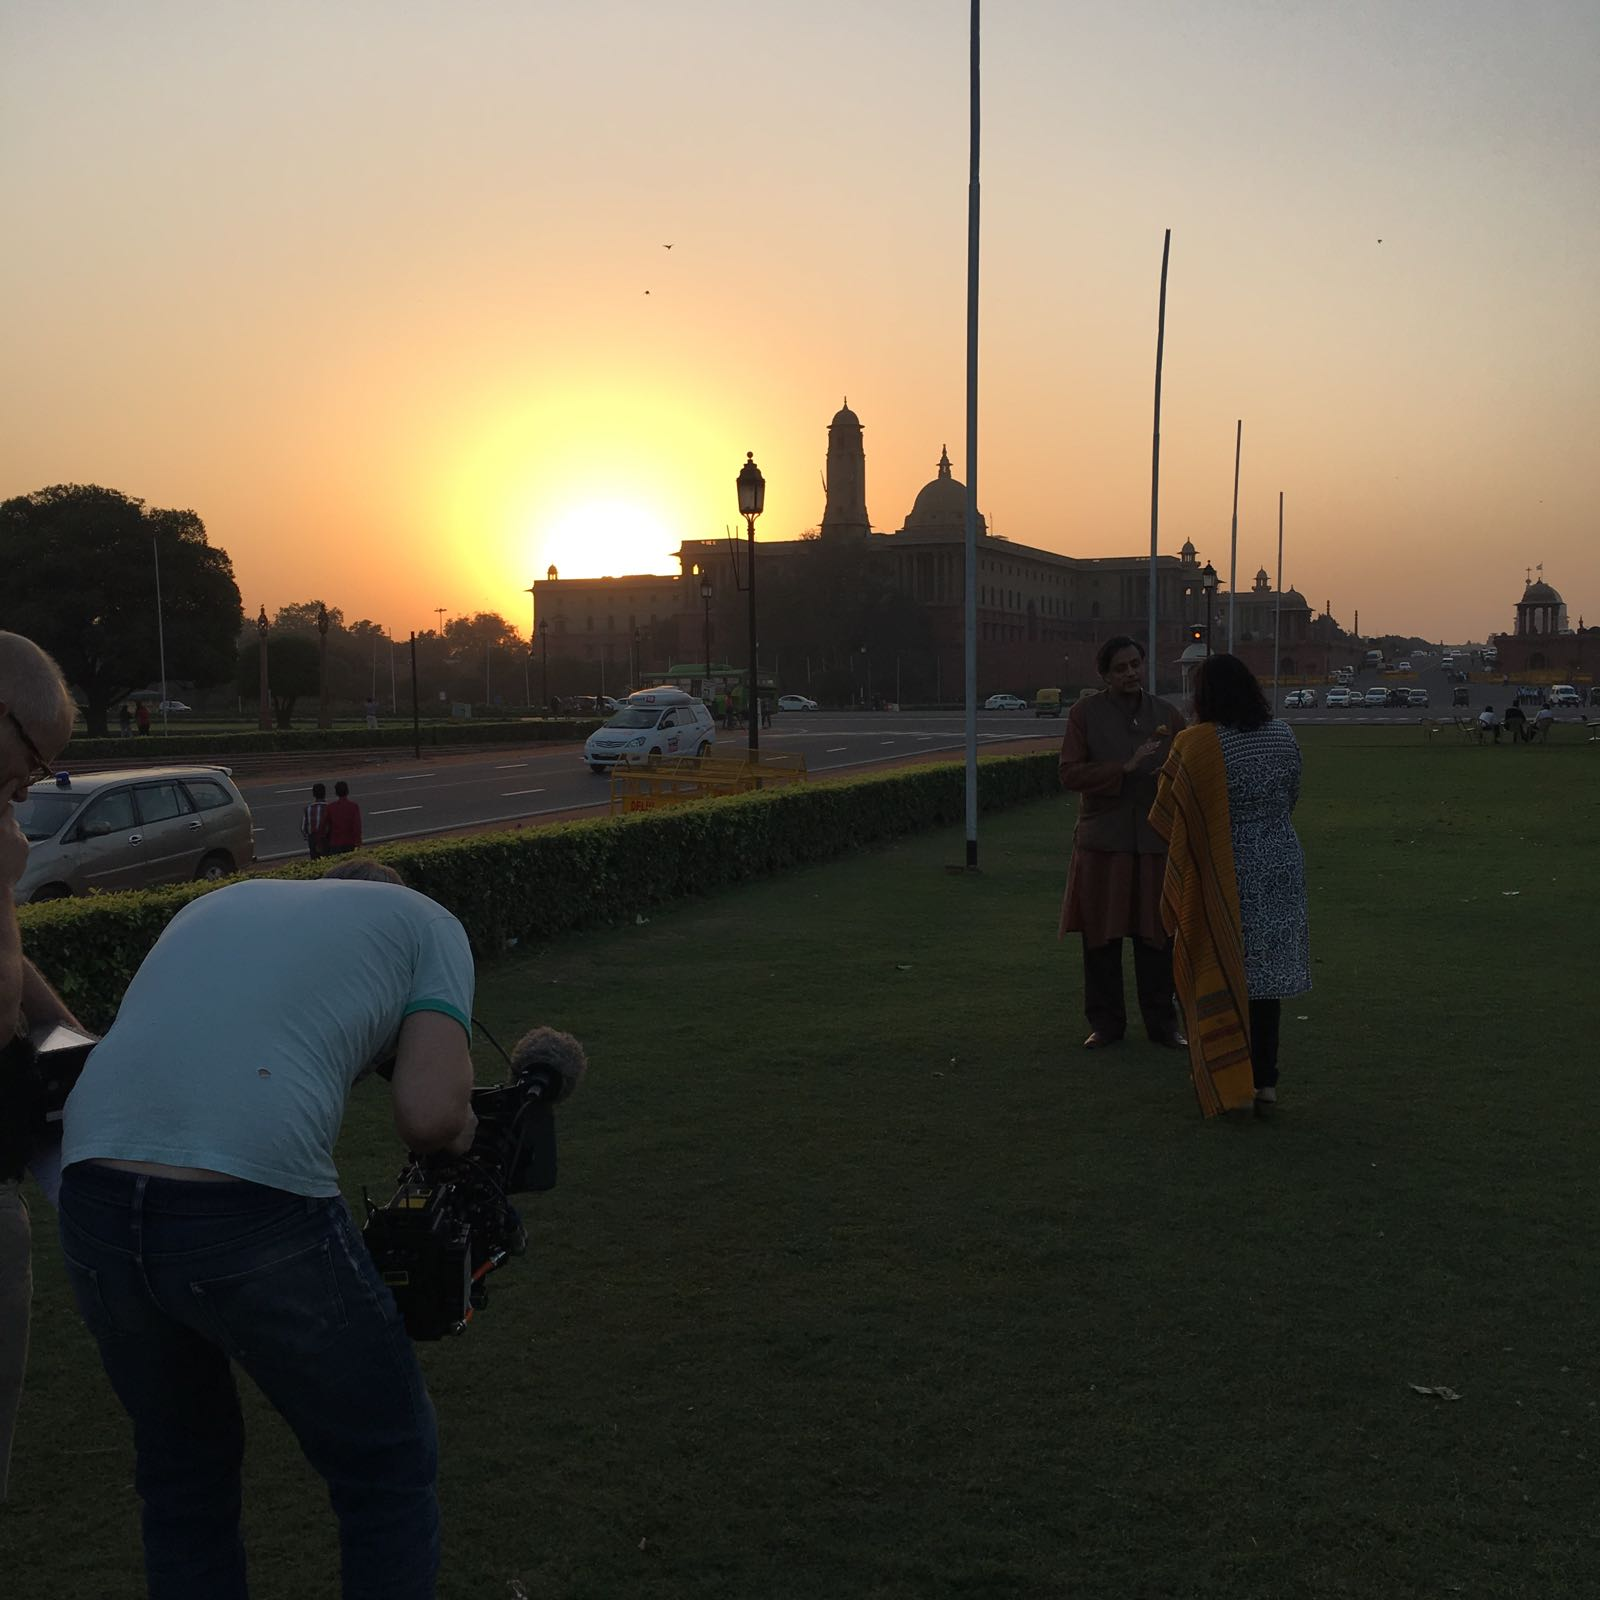 Beautiful shot with sun setting in the background